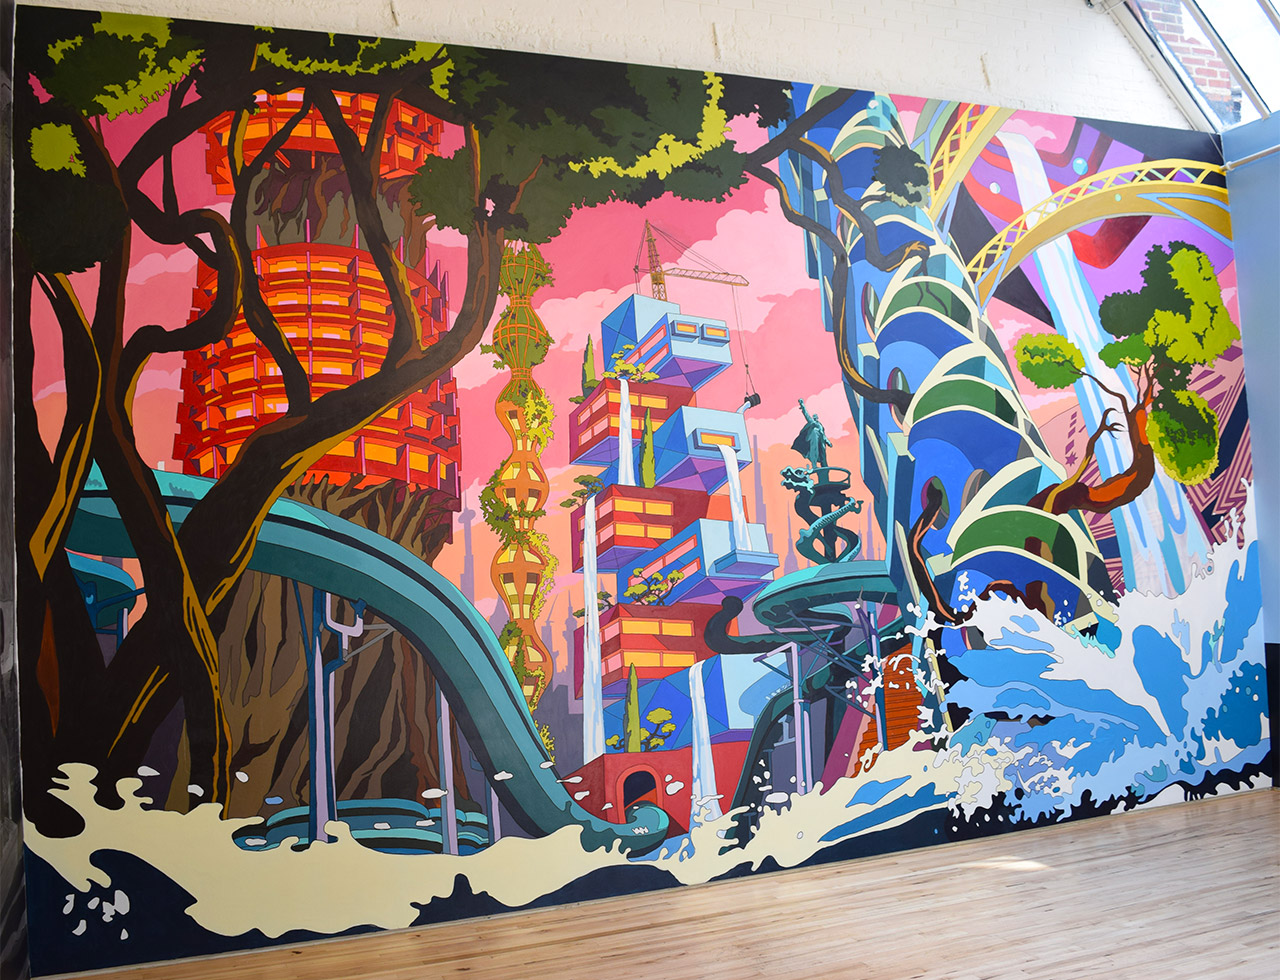 """Chris Doyle, """"Everhigher"""" (2015) at Andrew Edlin Gallery (all photos by the author for Hyperallergic)"""